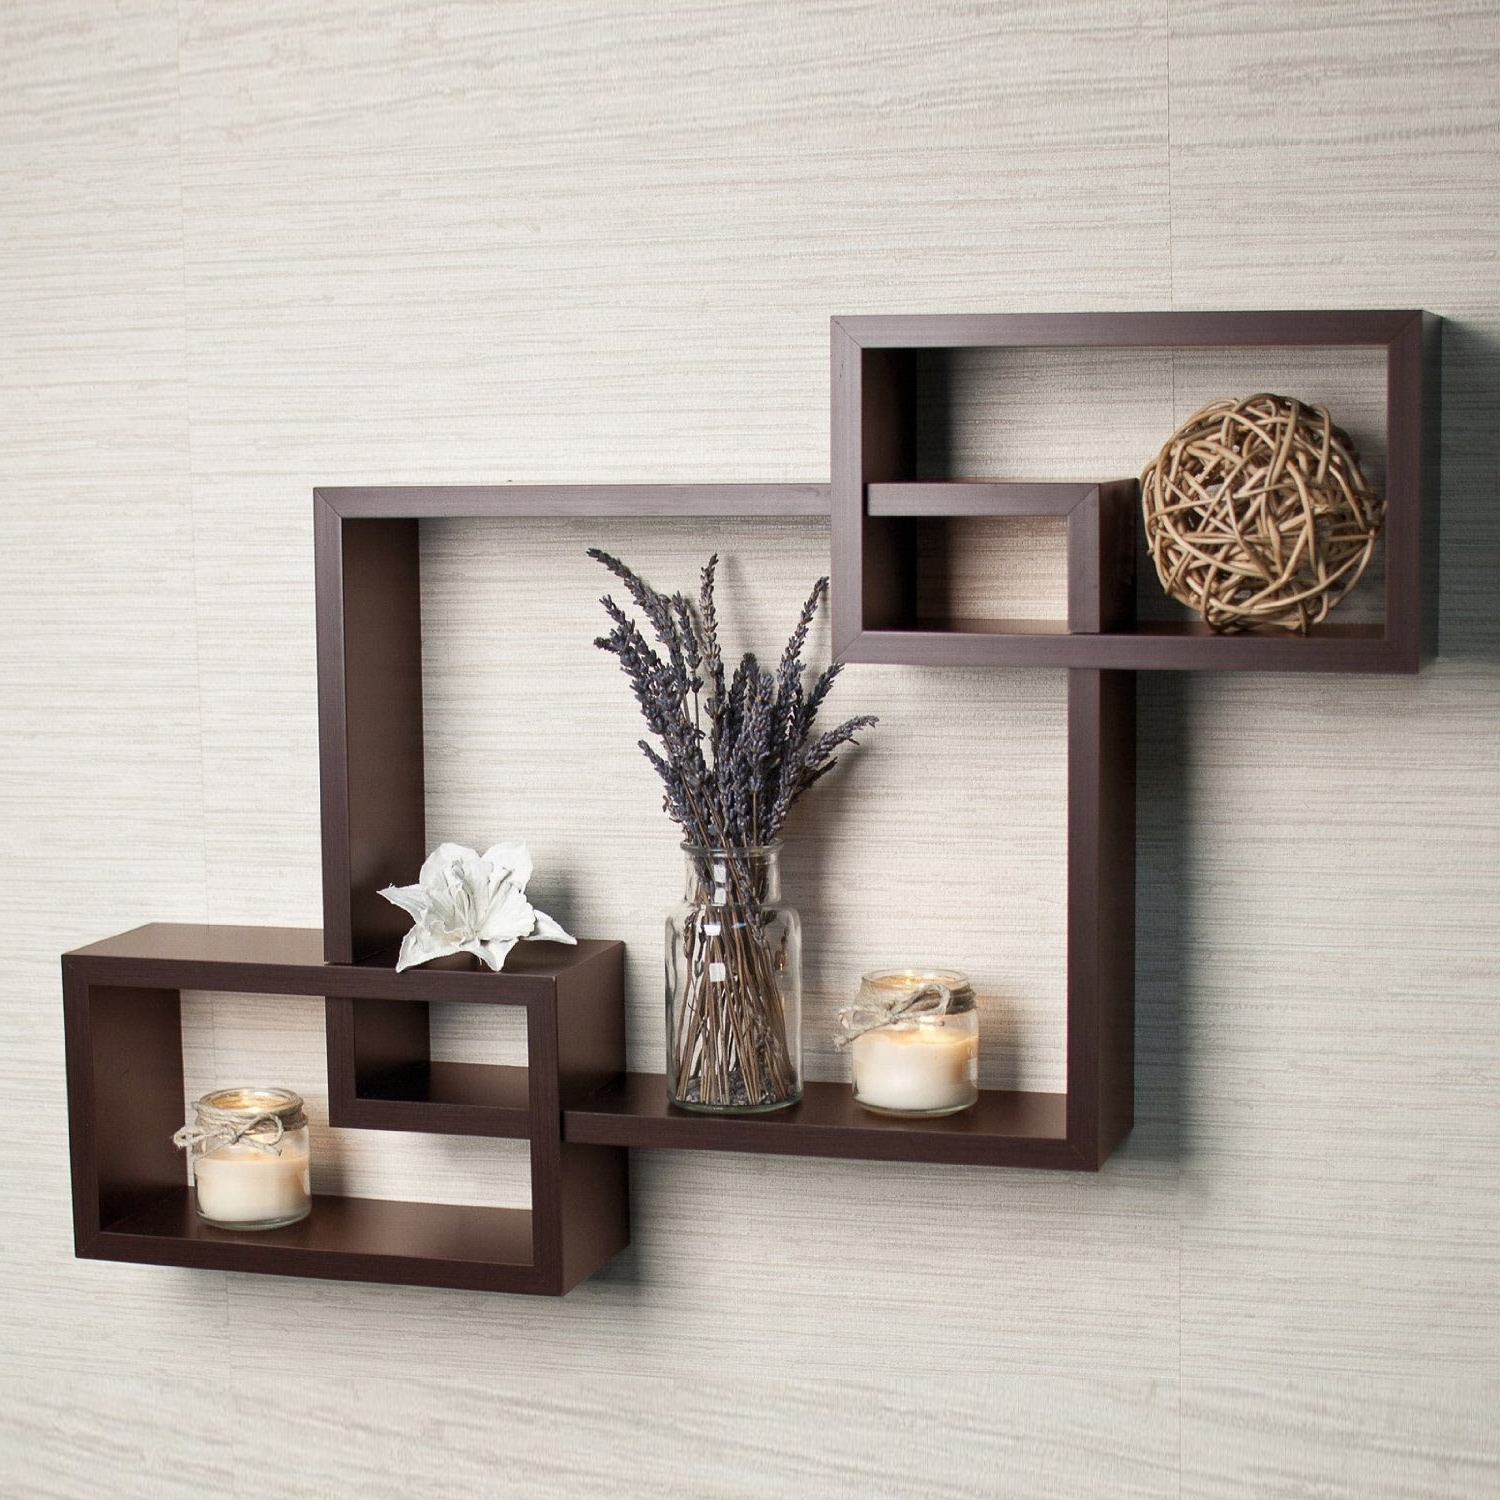 Driftingwood Wall Shelf Rack Set Of 3 Intersecting Wall Shelves Within Well Known Wall Shelves (View 3 of 15)